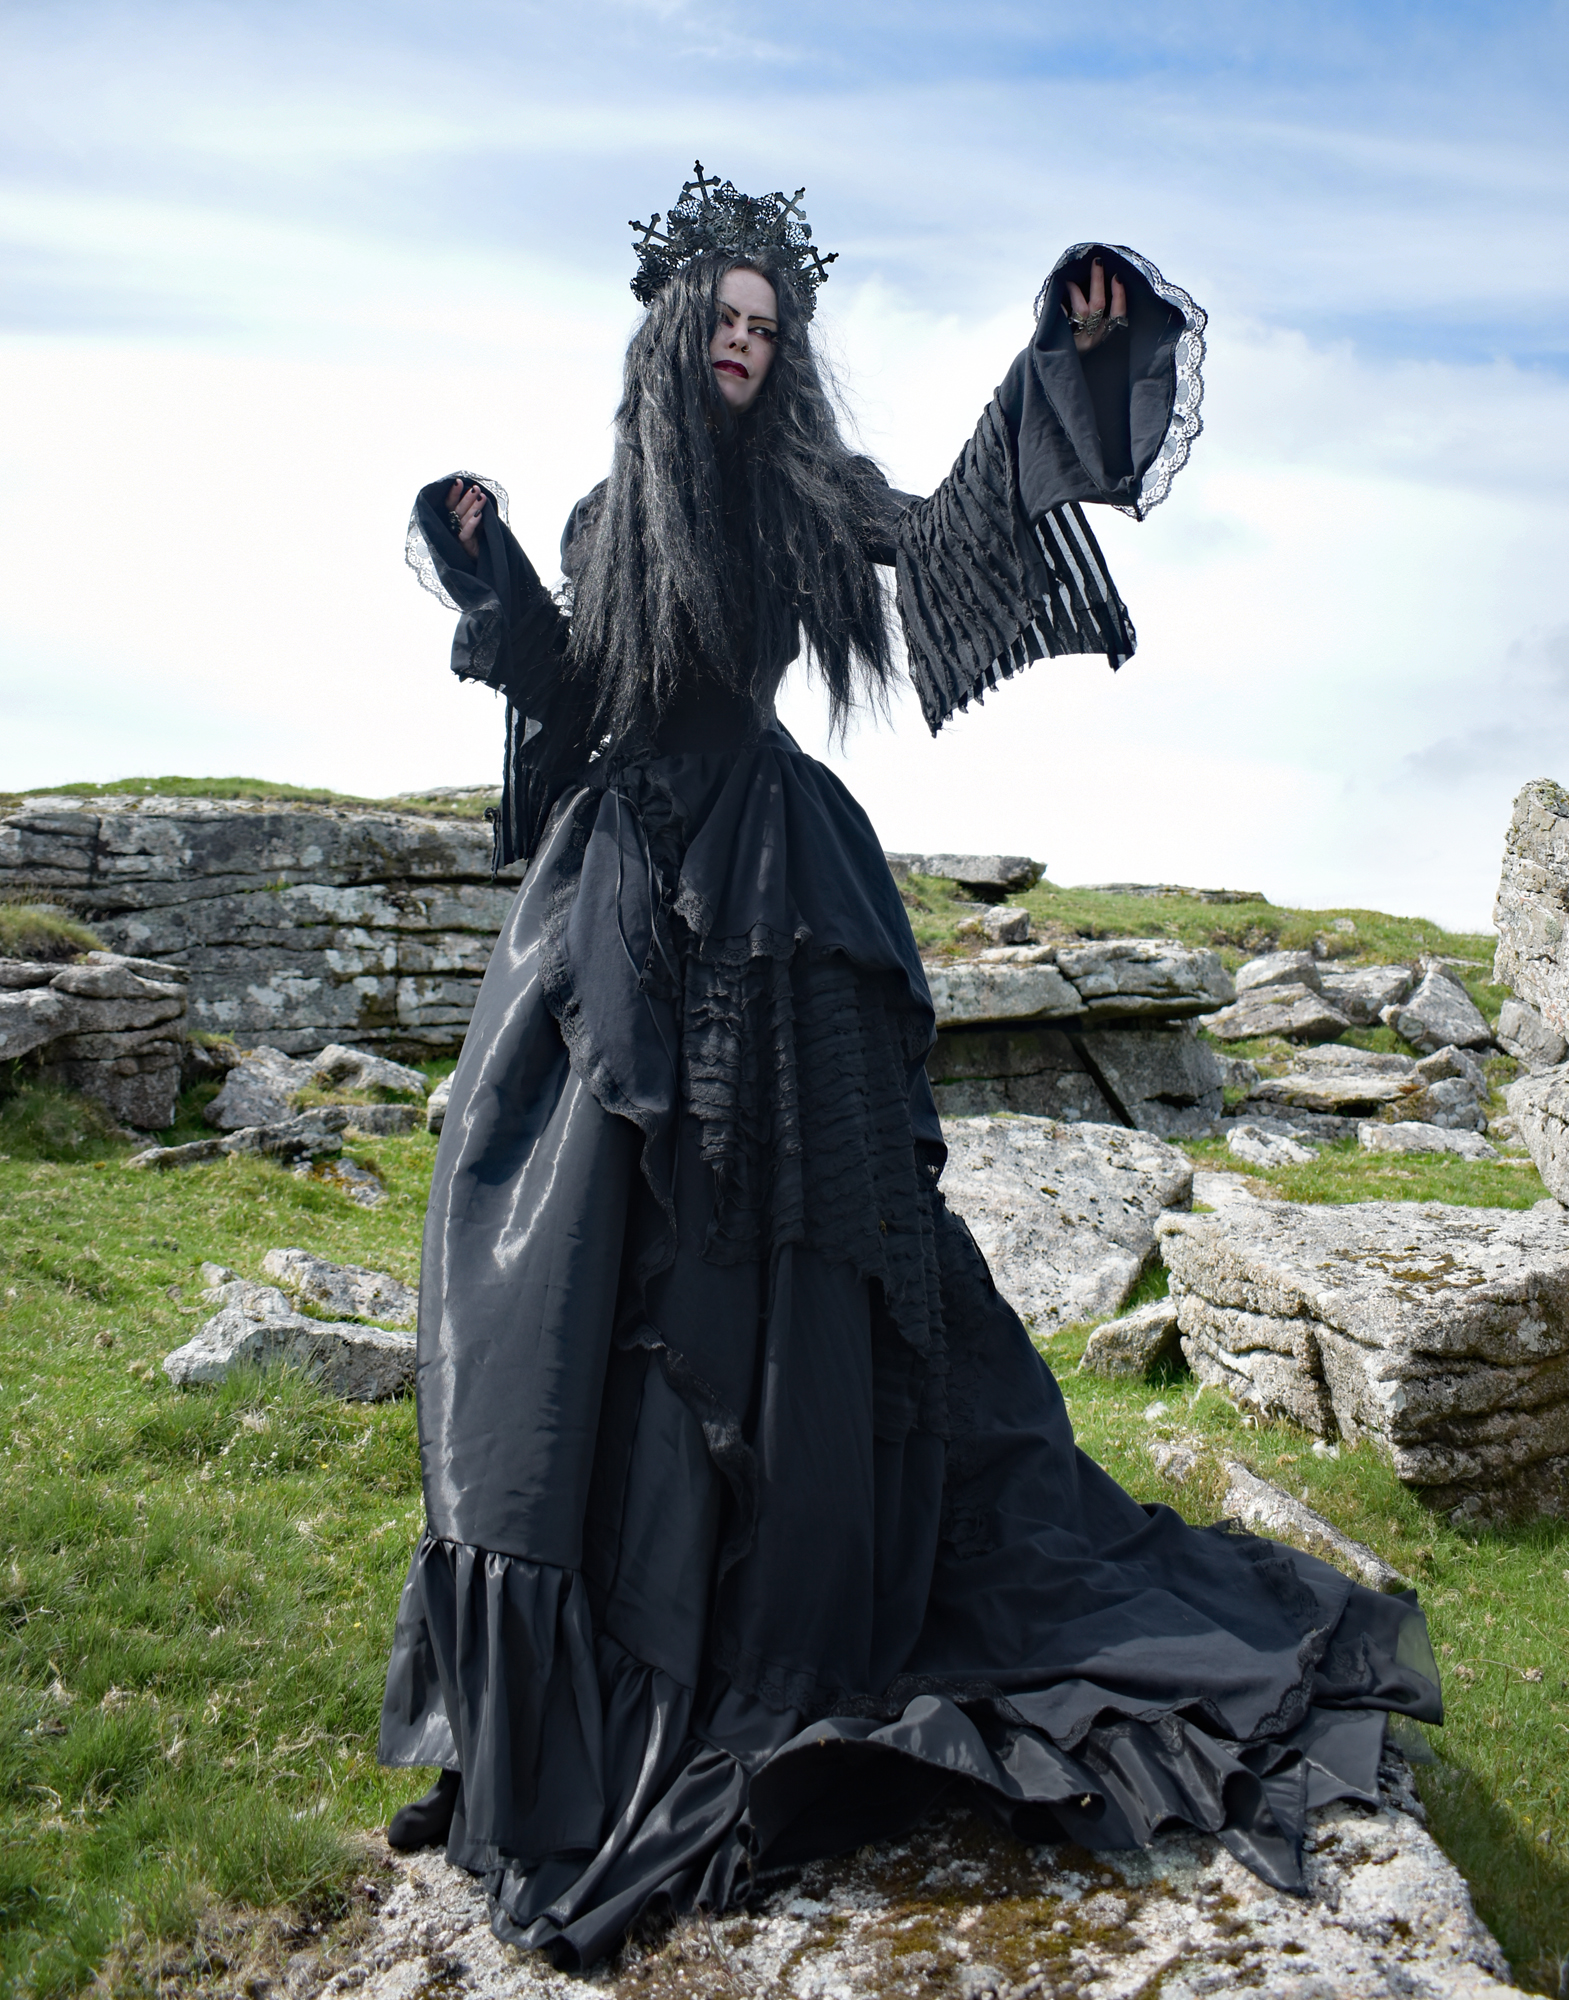 Morgana Maiden Gown - on the site now and ready to witch it up! :D